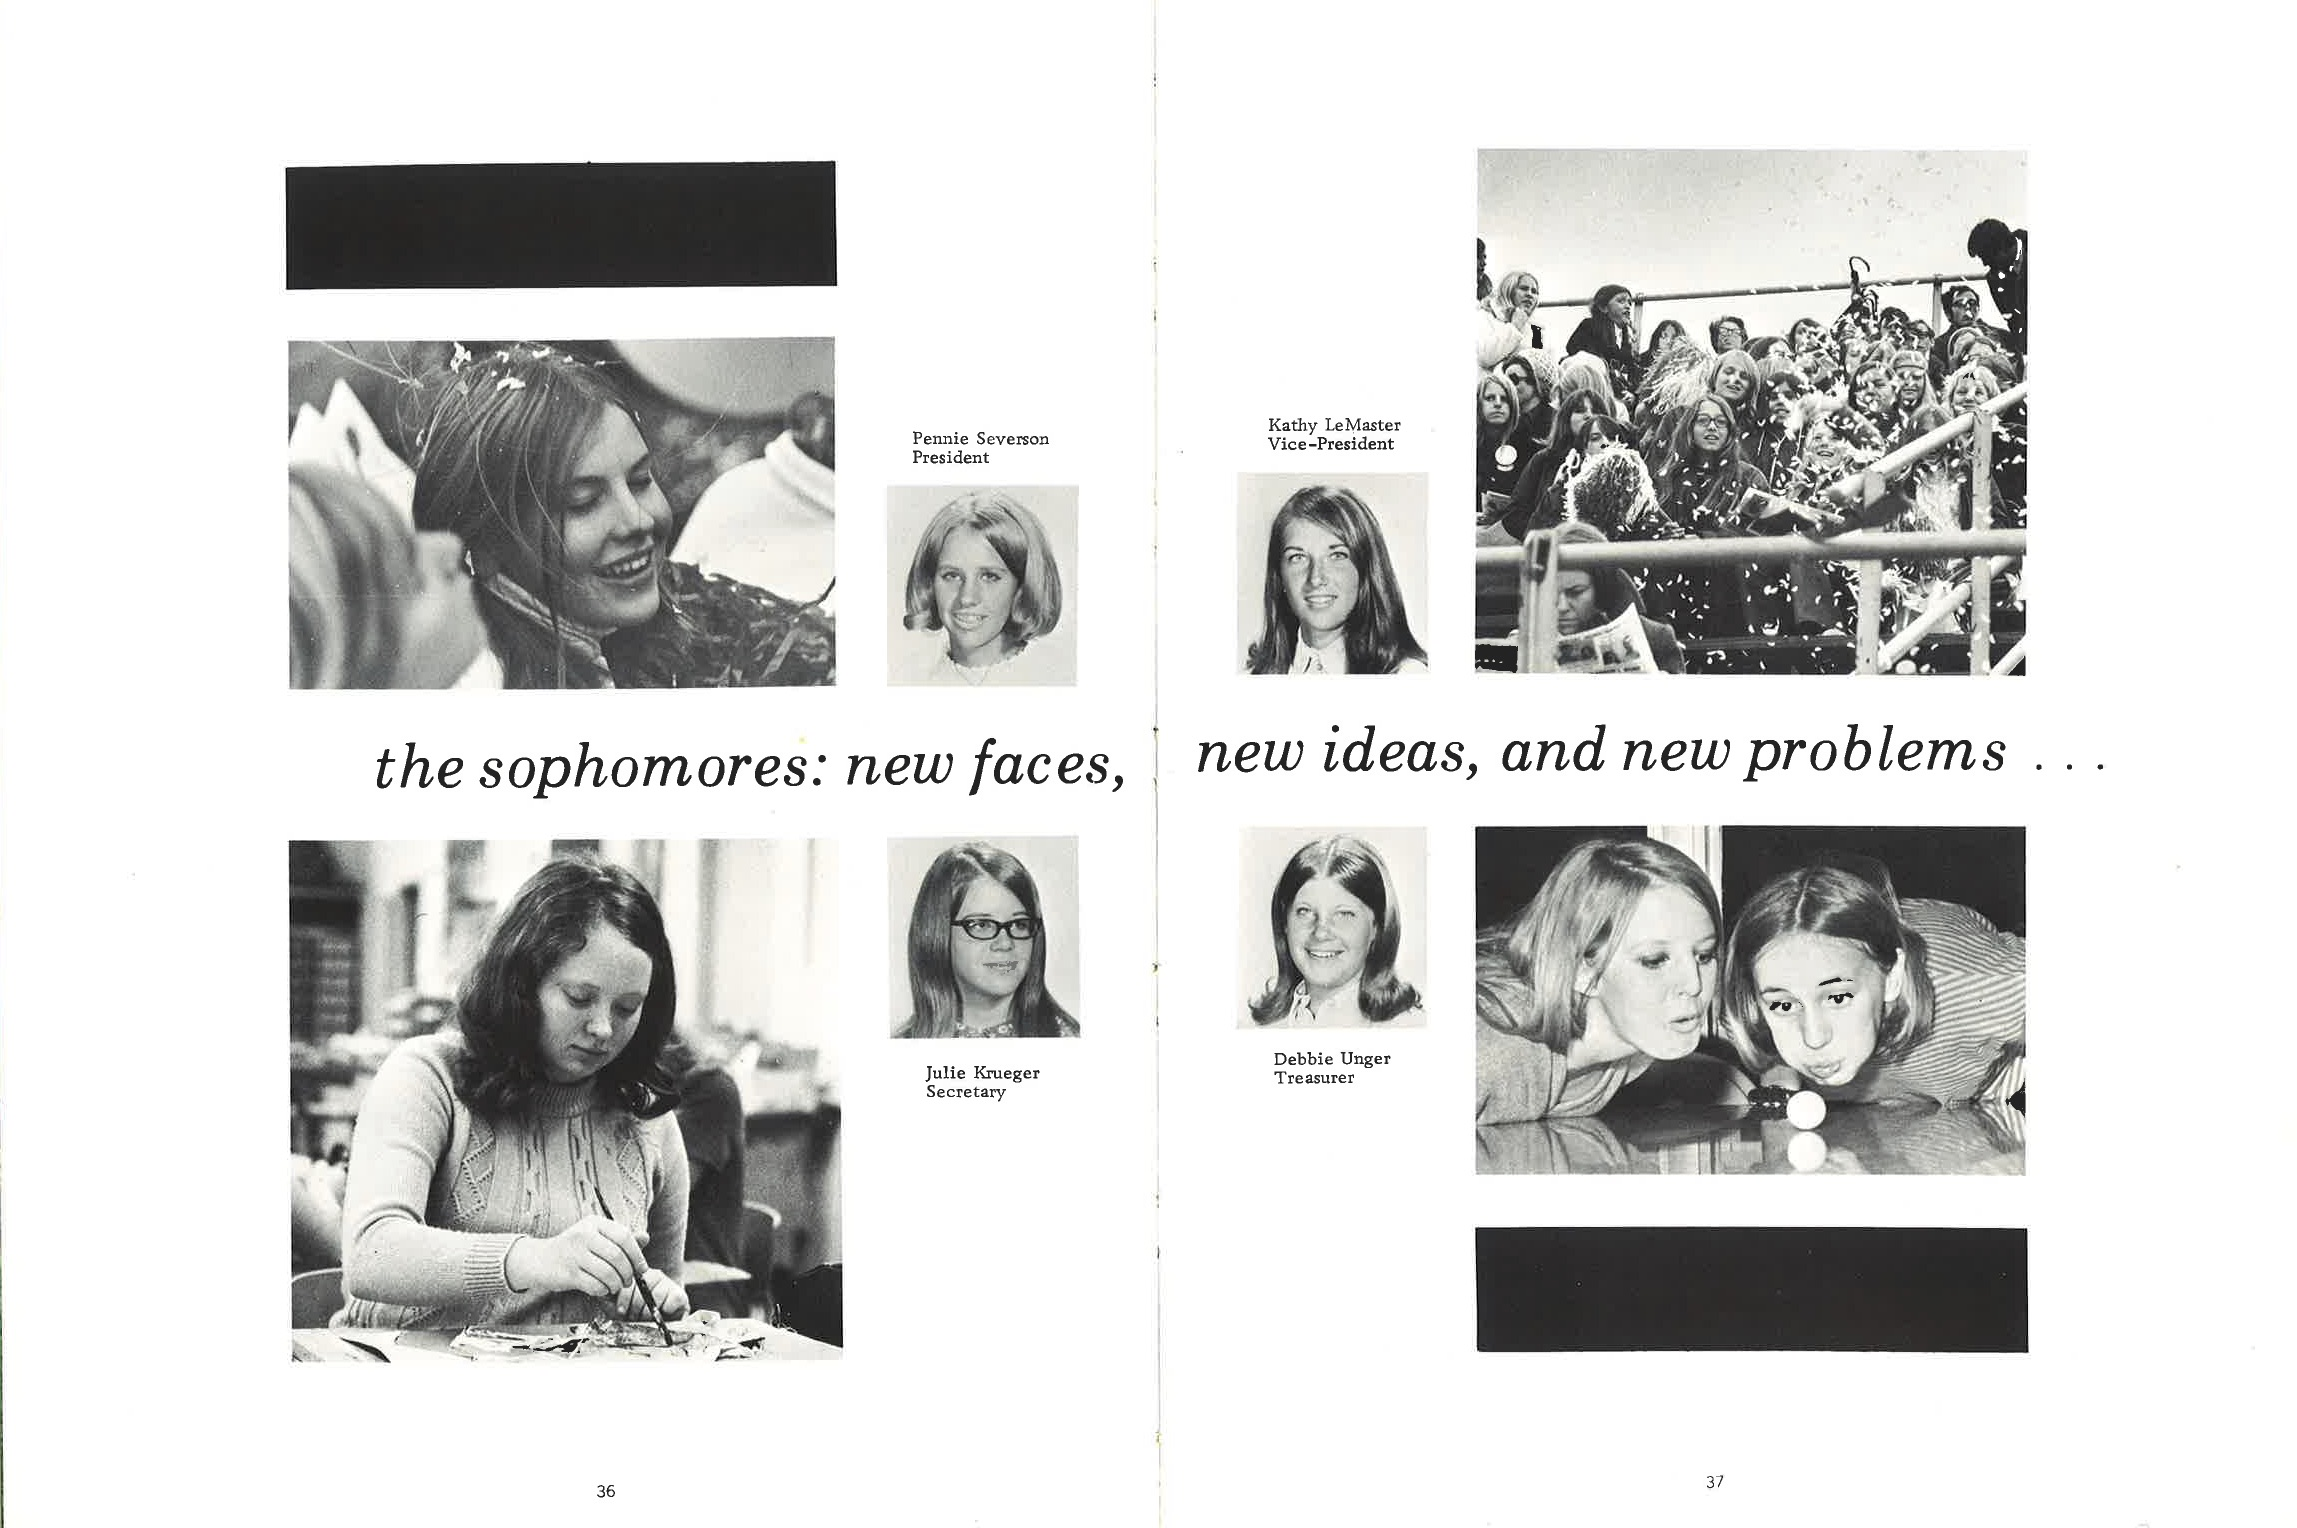 1971_Yearbook_36-37.jpg